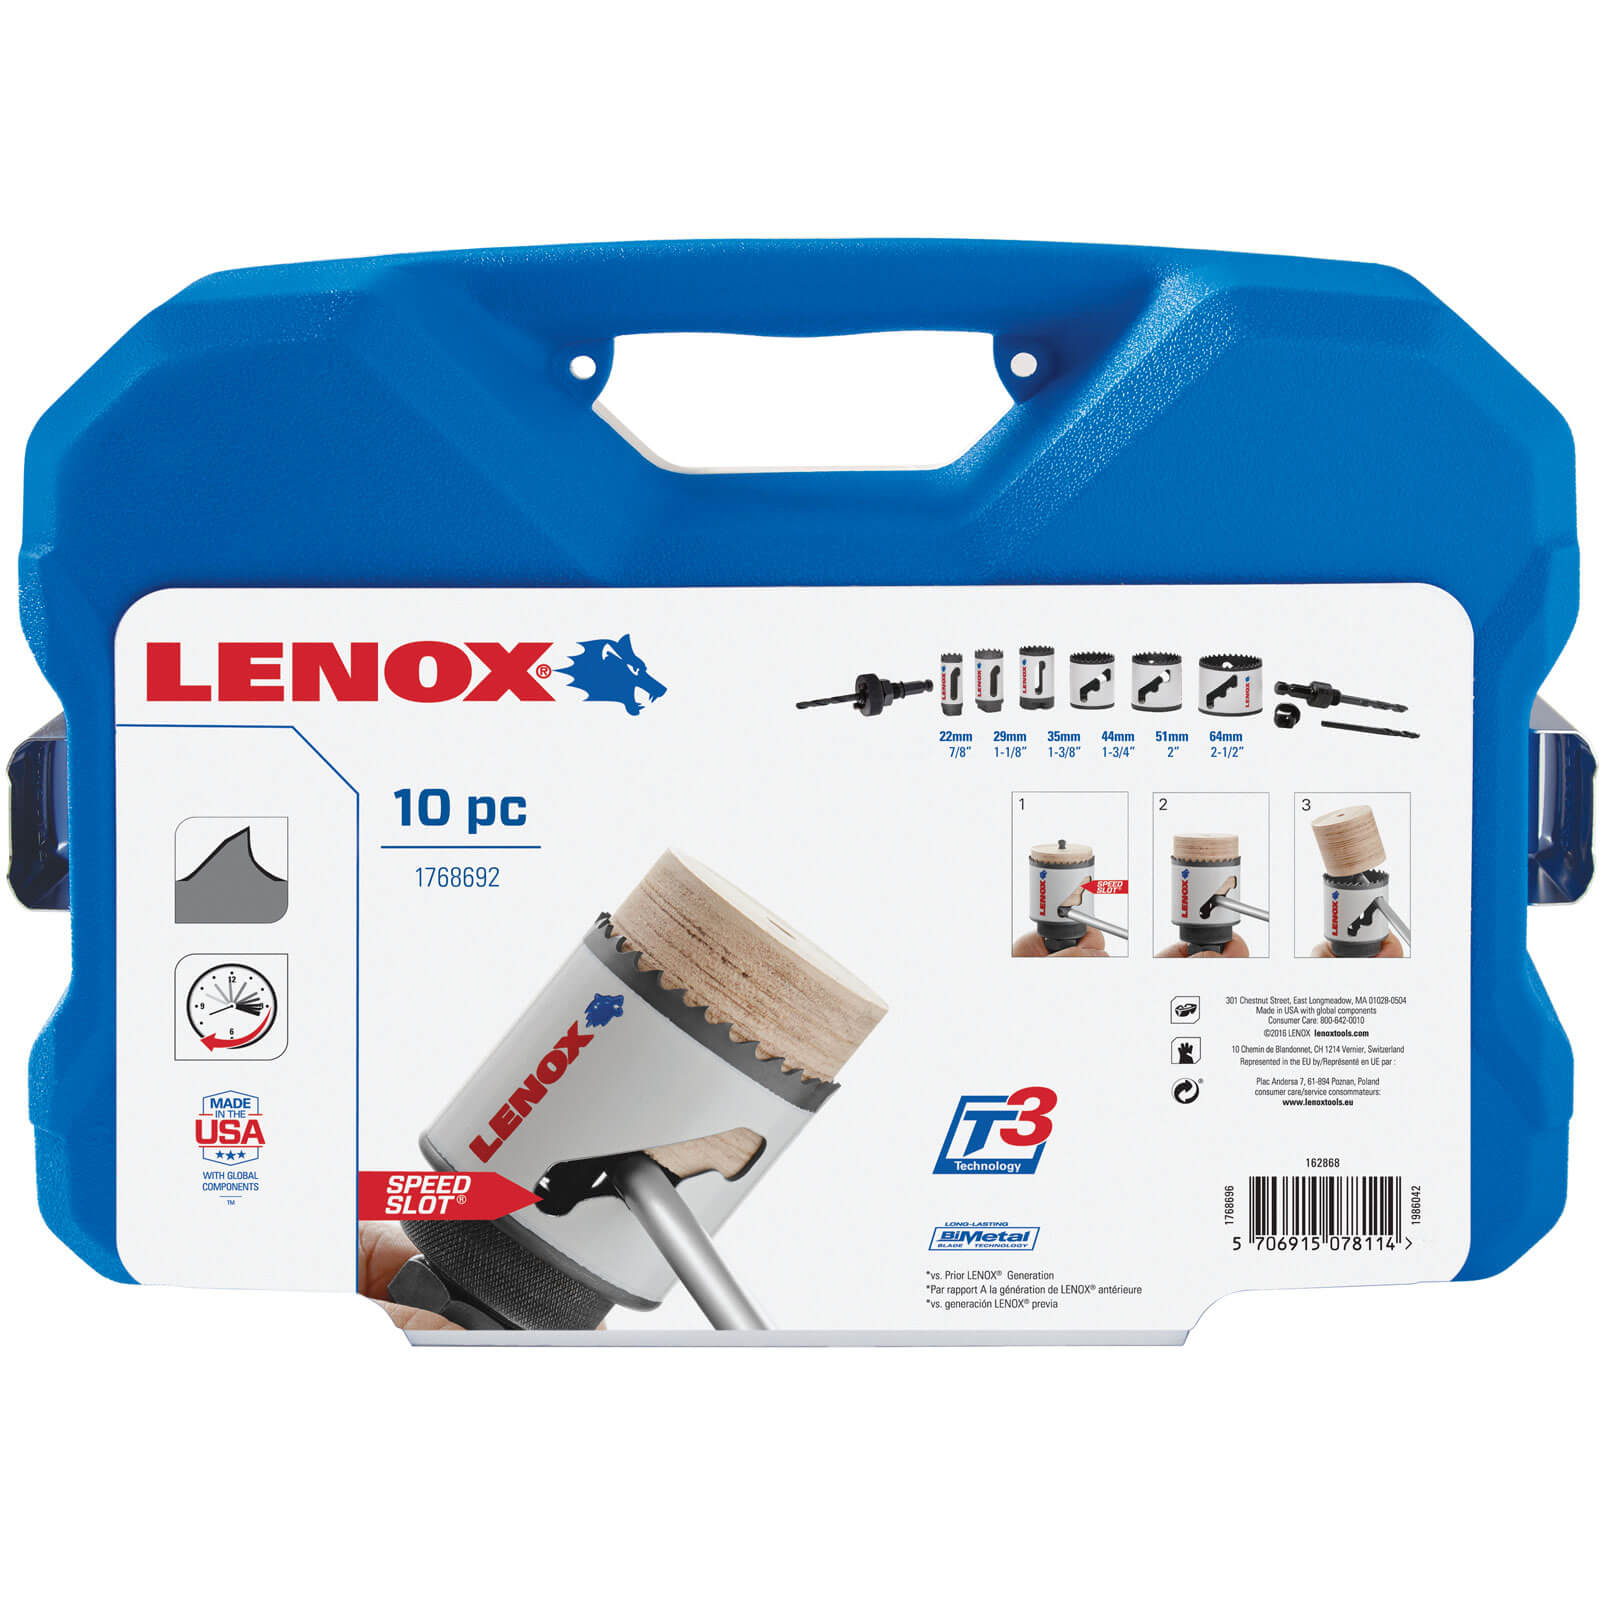 Image of Lenox 10 Piece Electricians Hole Saw Set